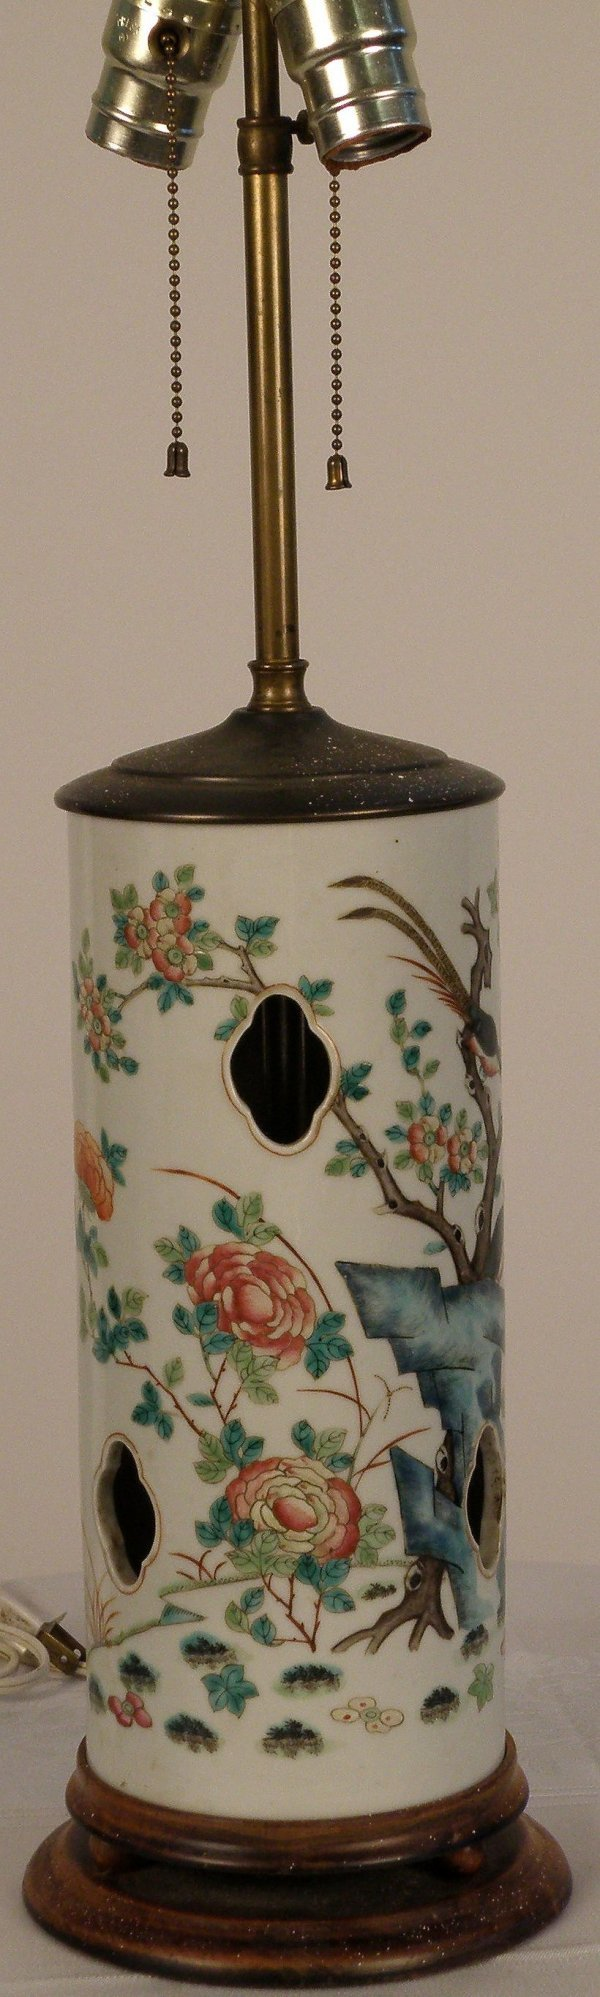 8: A Chinese famille-rose vase made as lamp